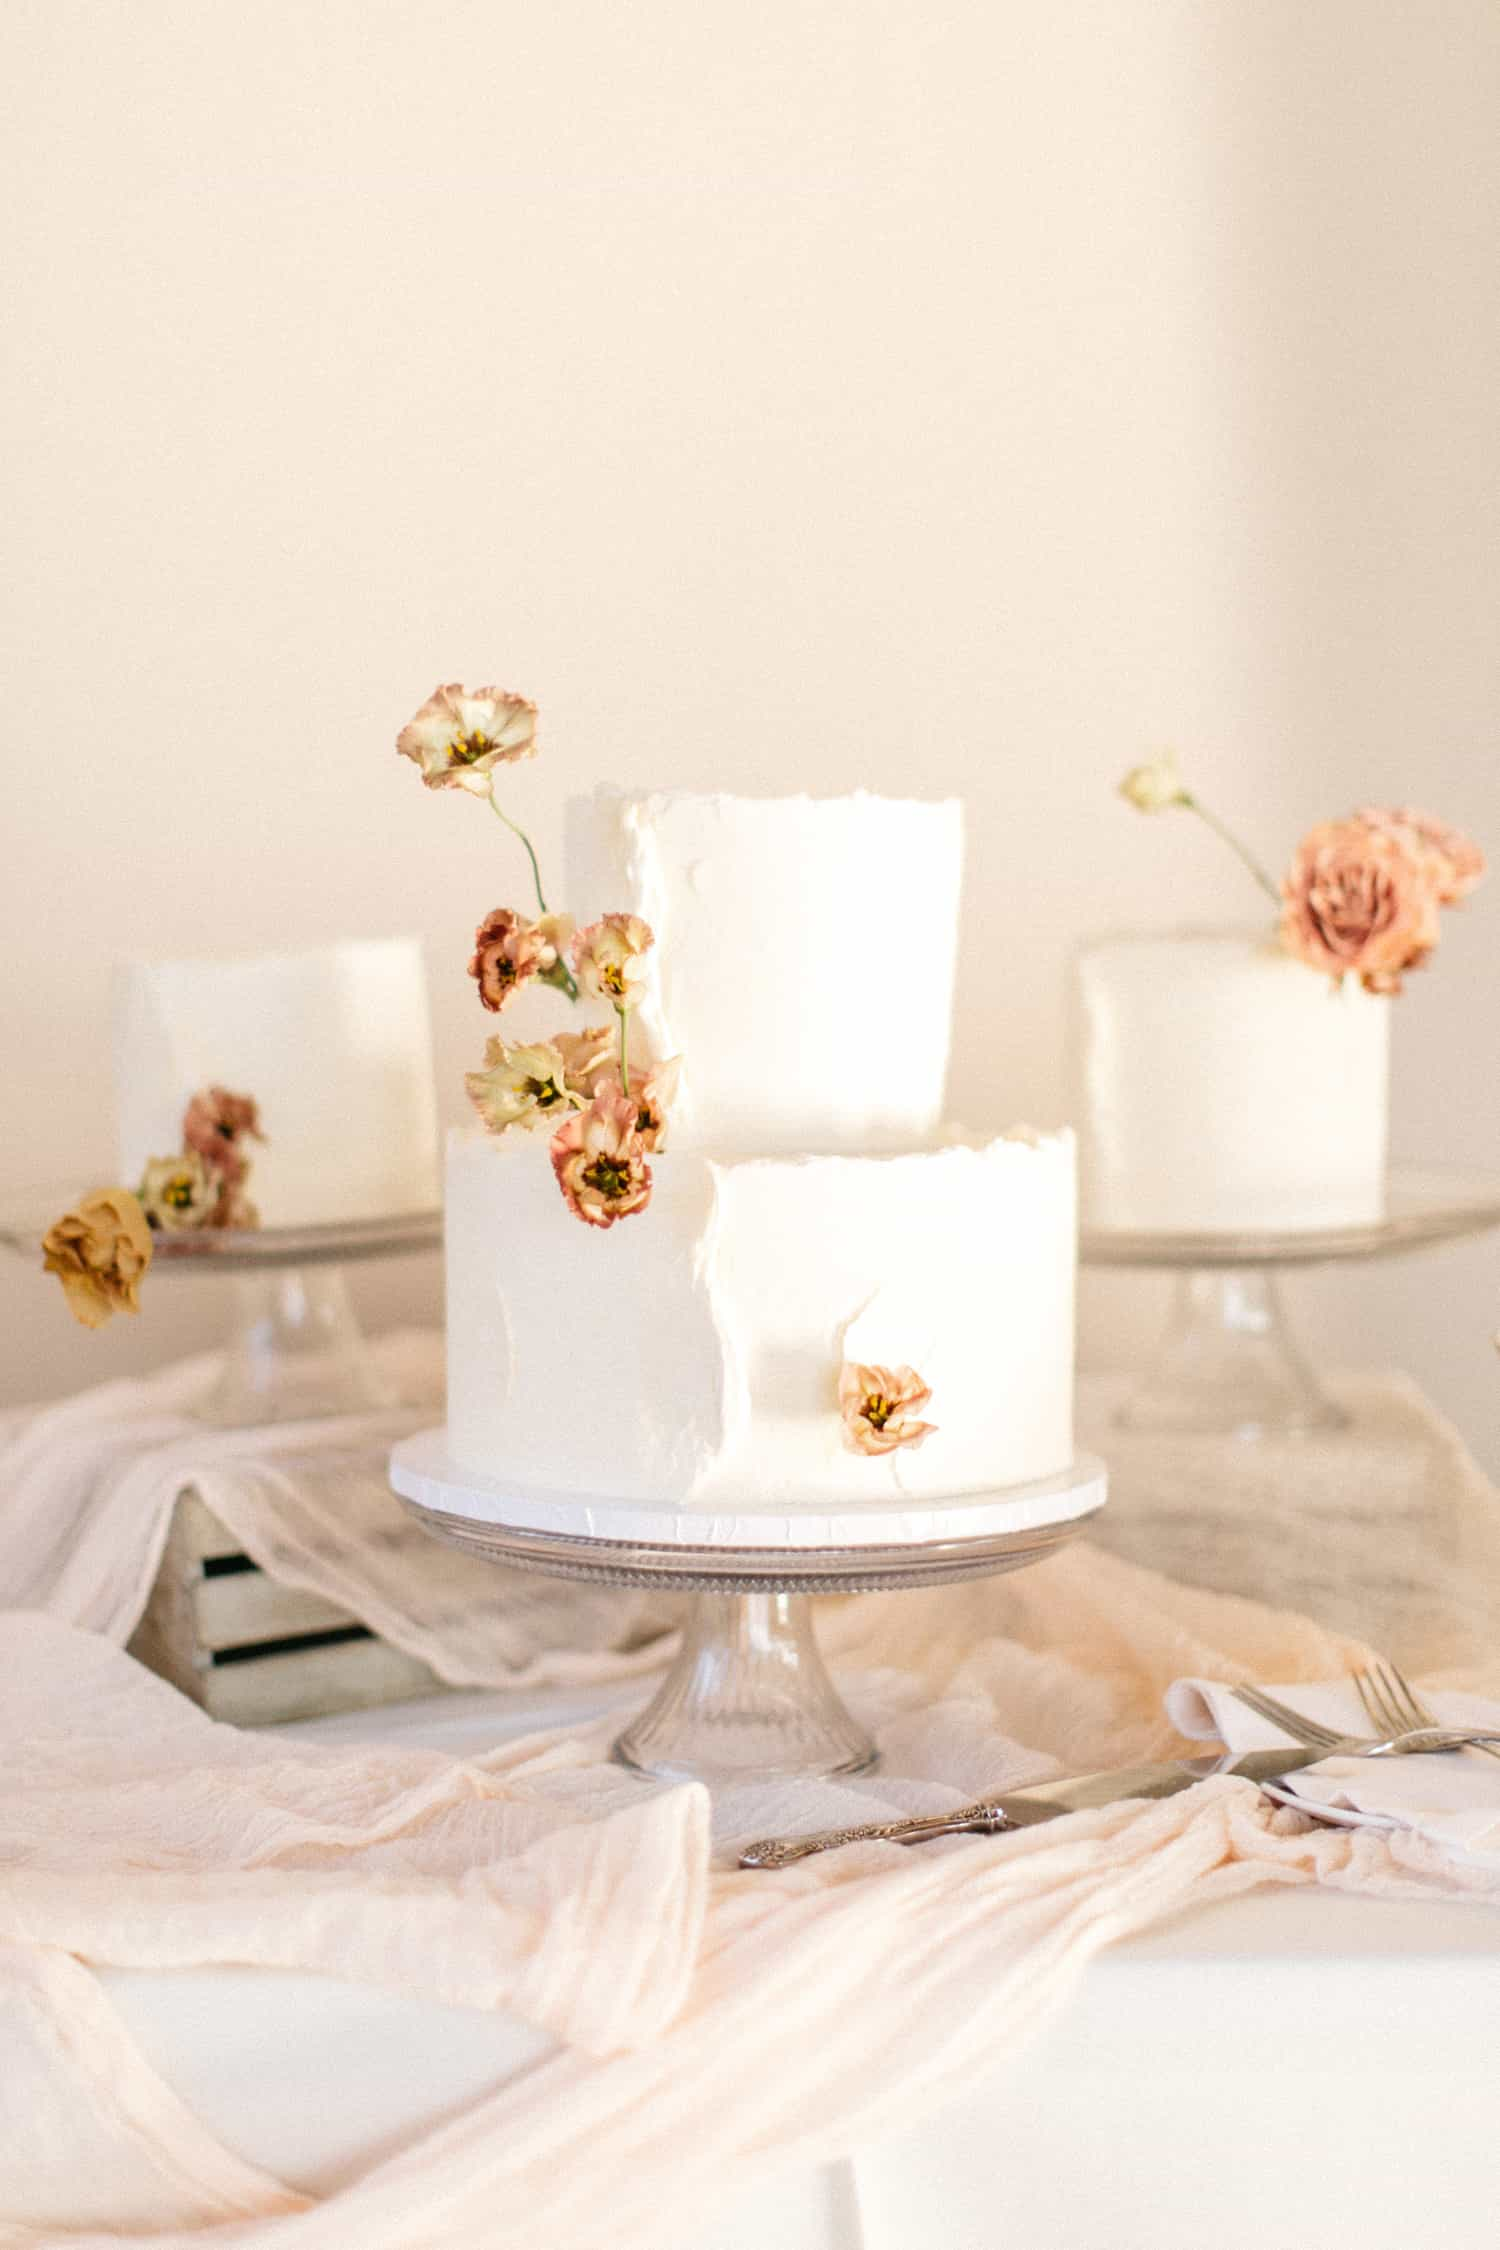 Cake flowers by Color Theory Collective